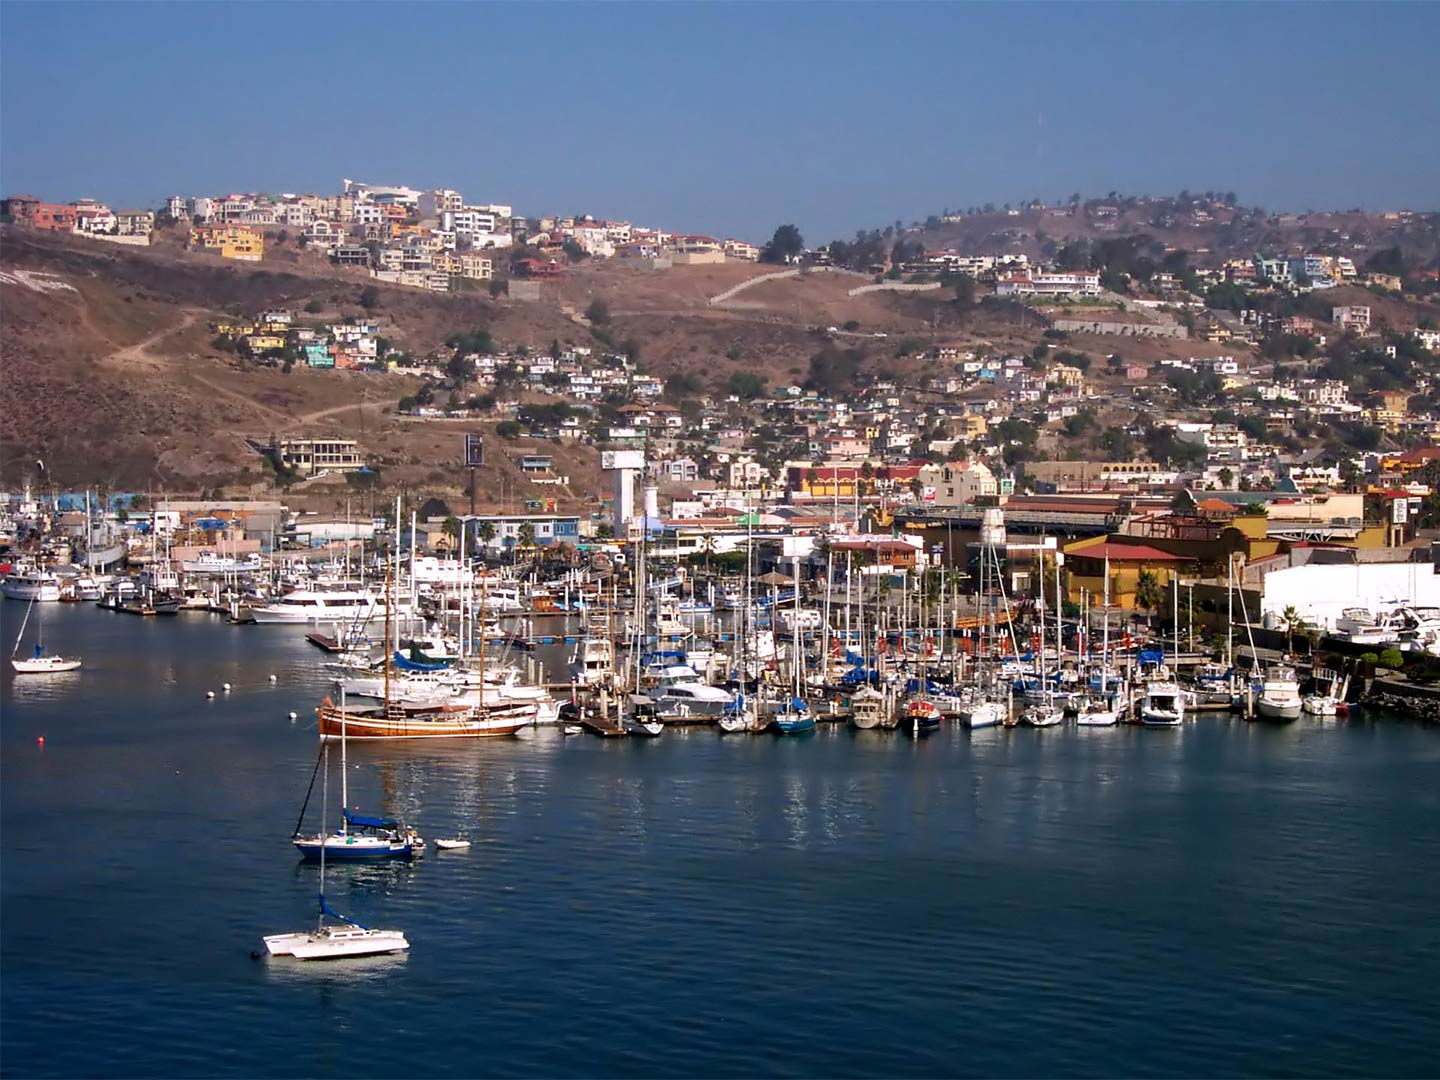 A view of Ensenada from the river with plenty of boats anchored in the harbor